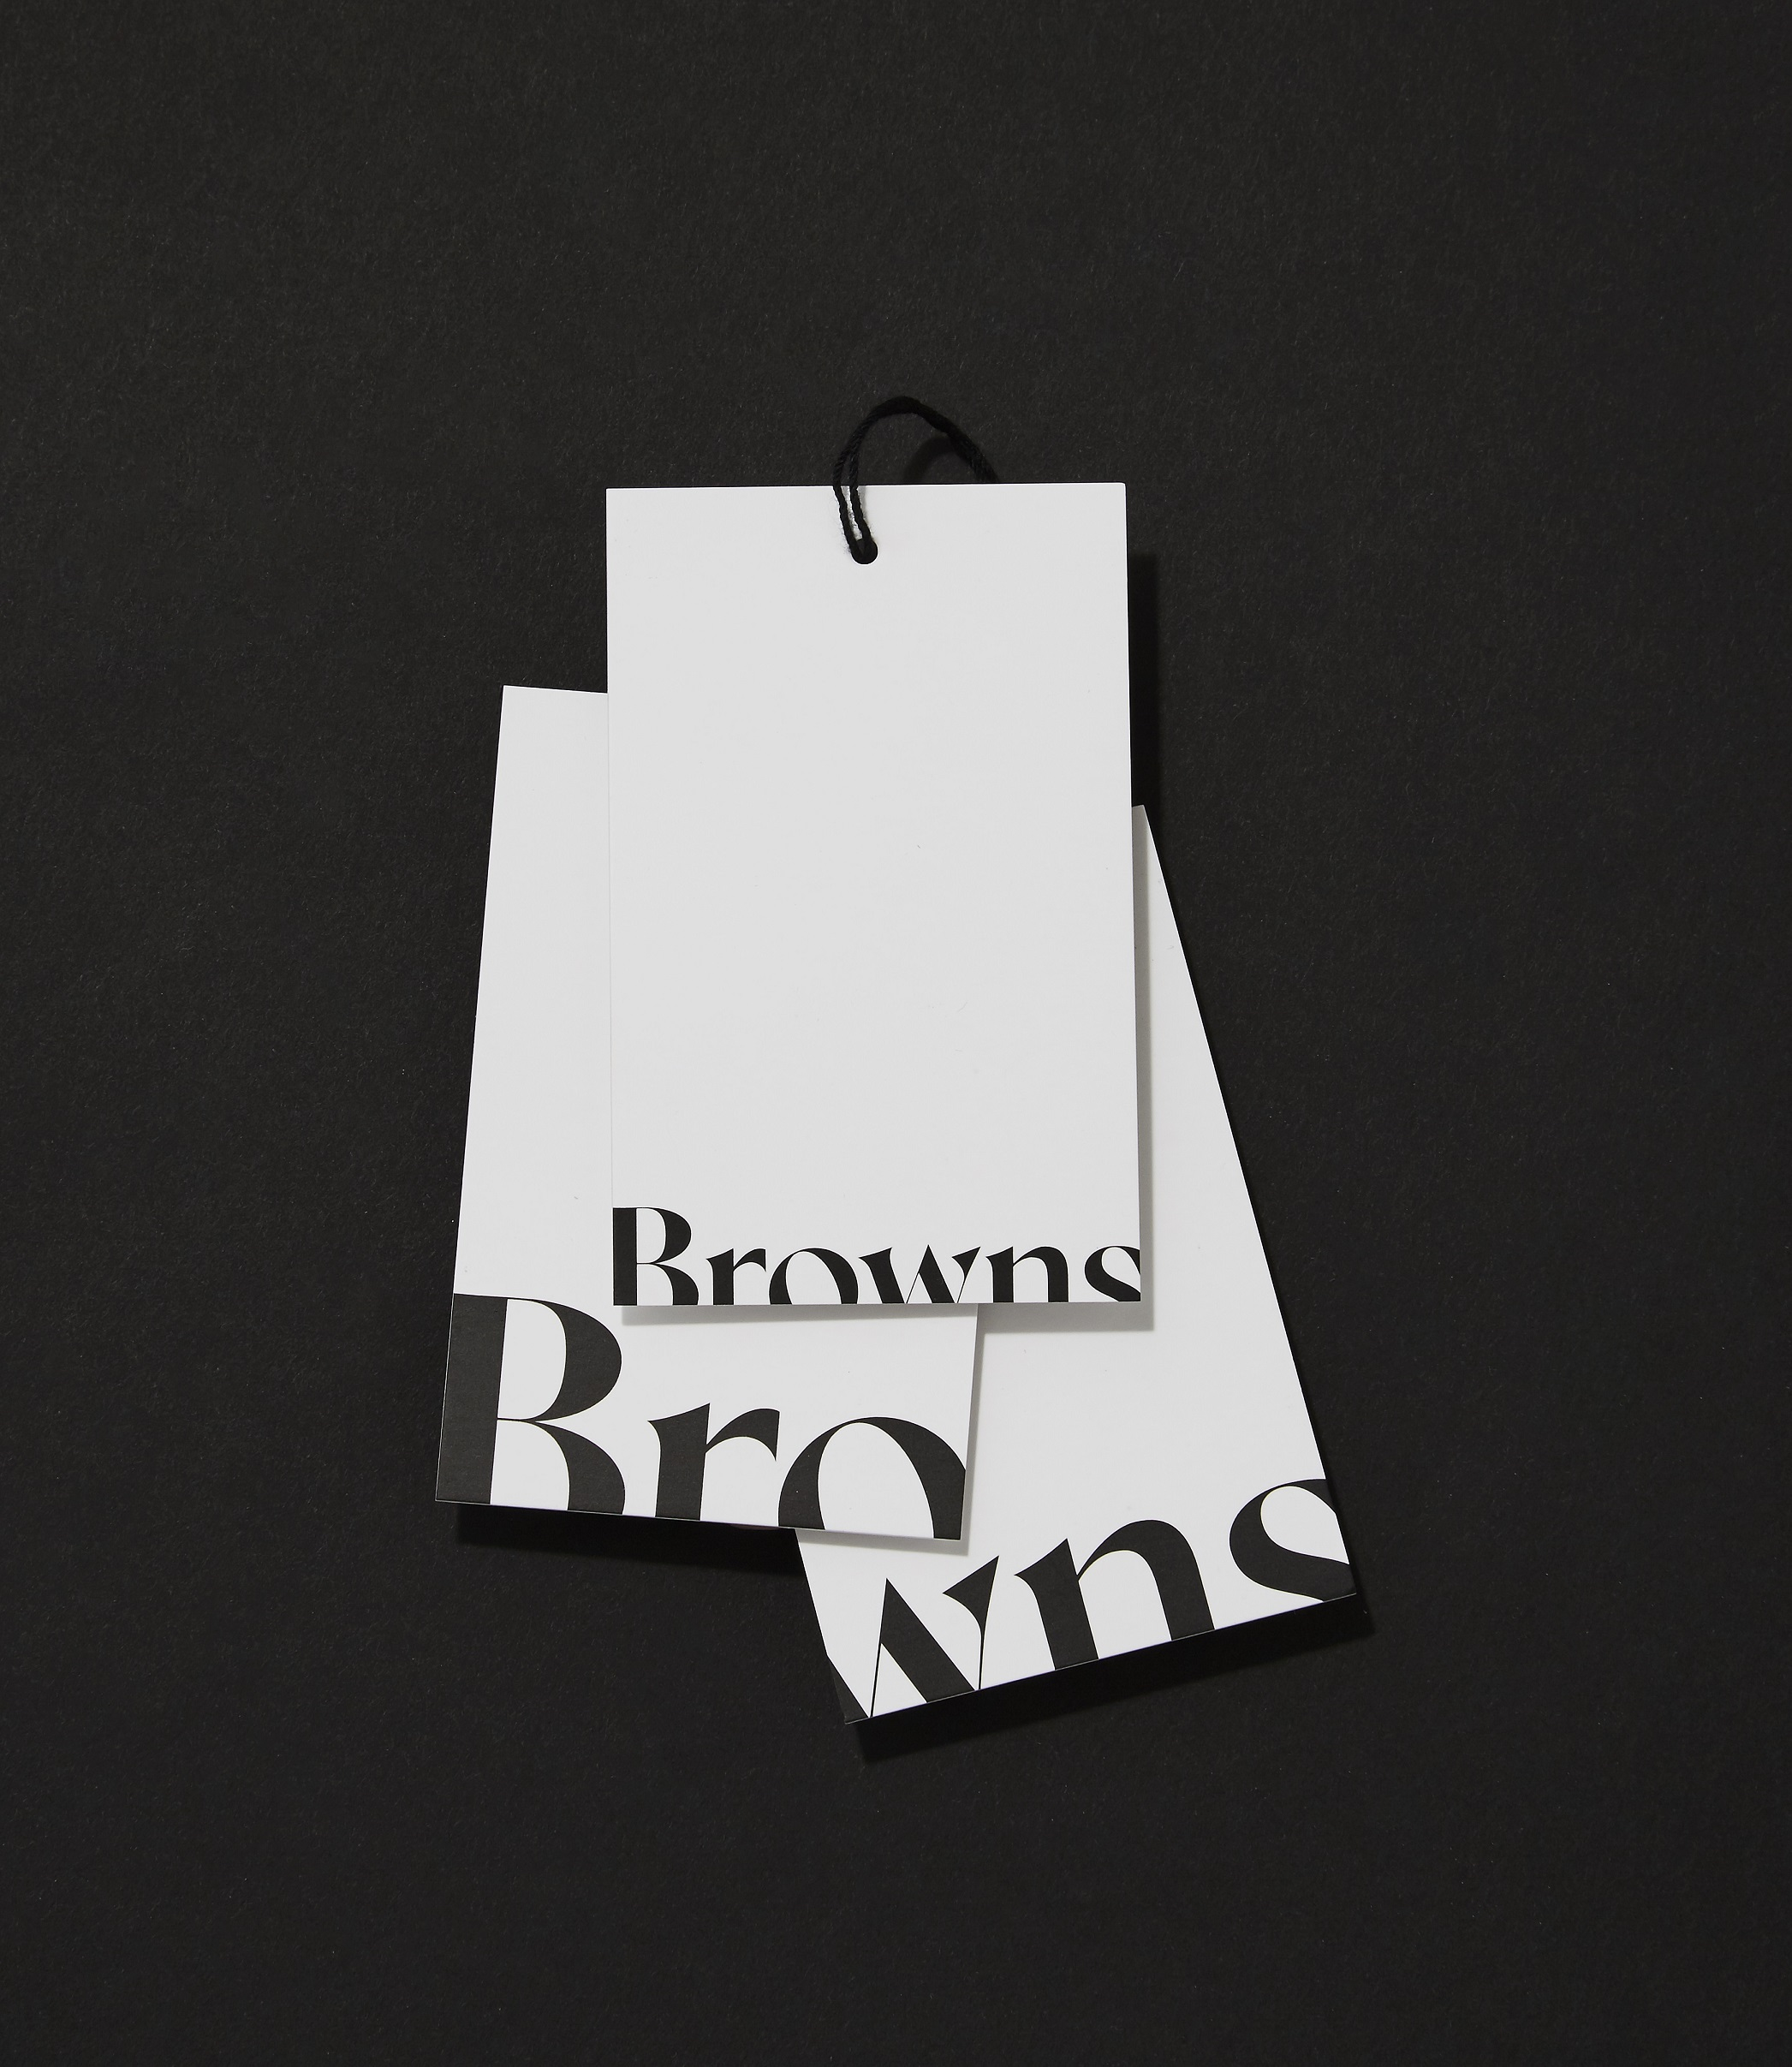 browns_embargo-14-11-10_tags